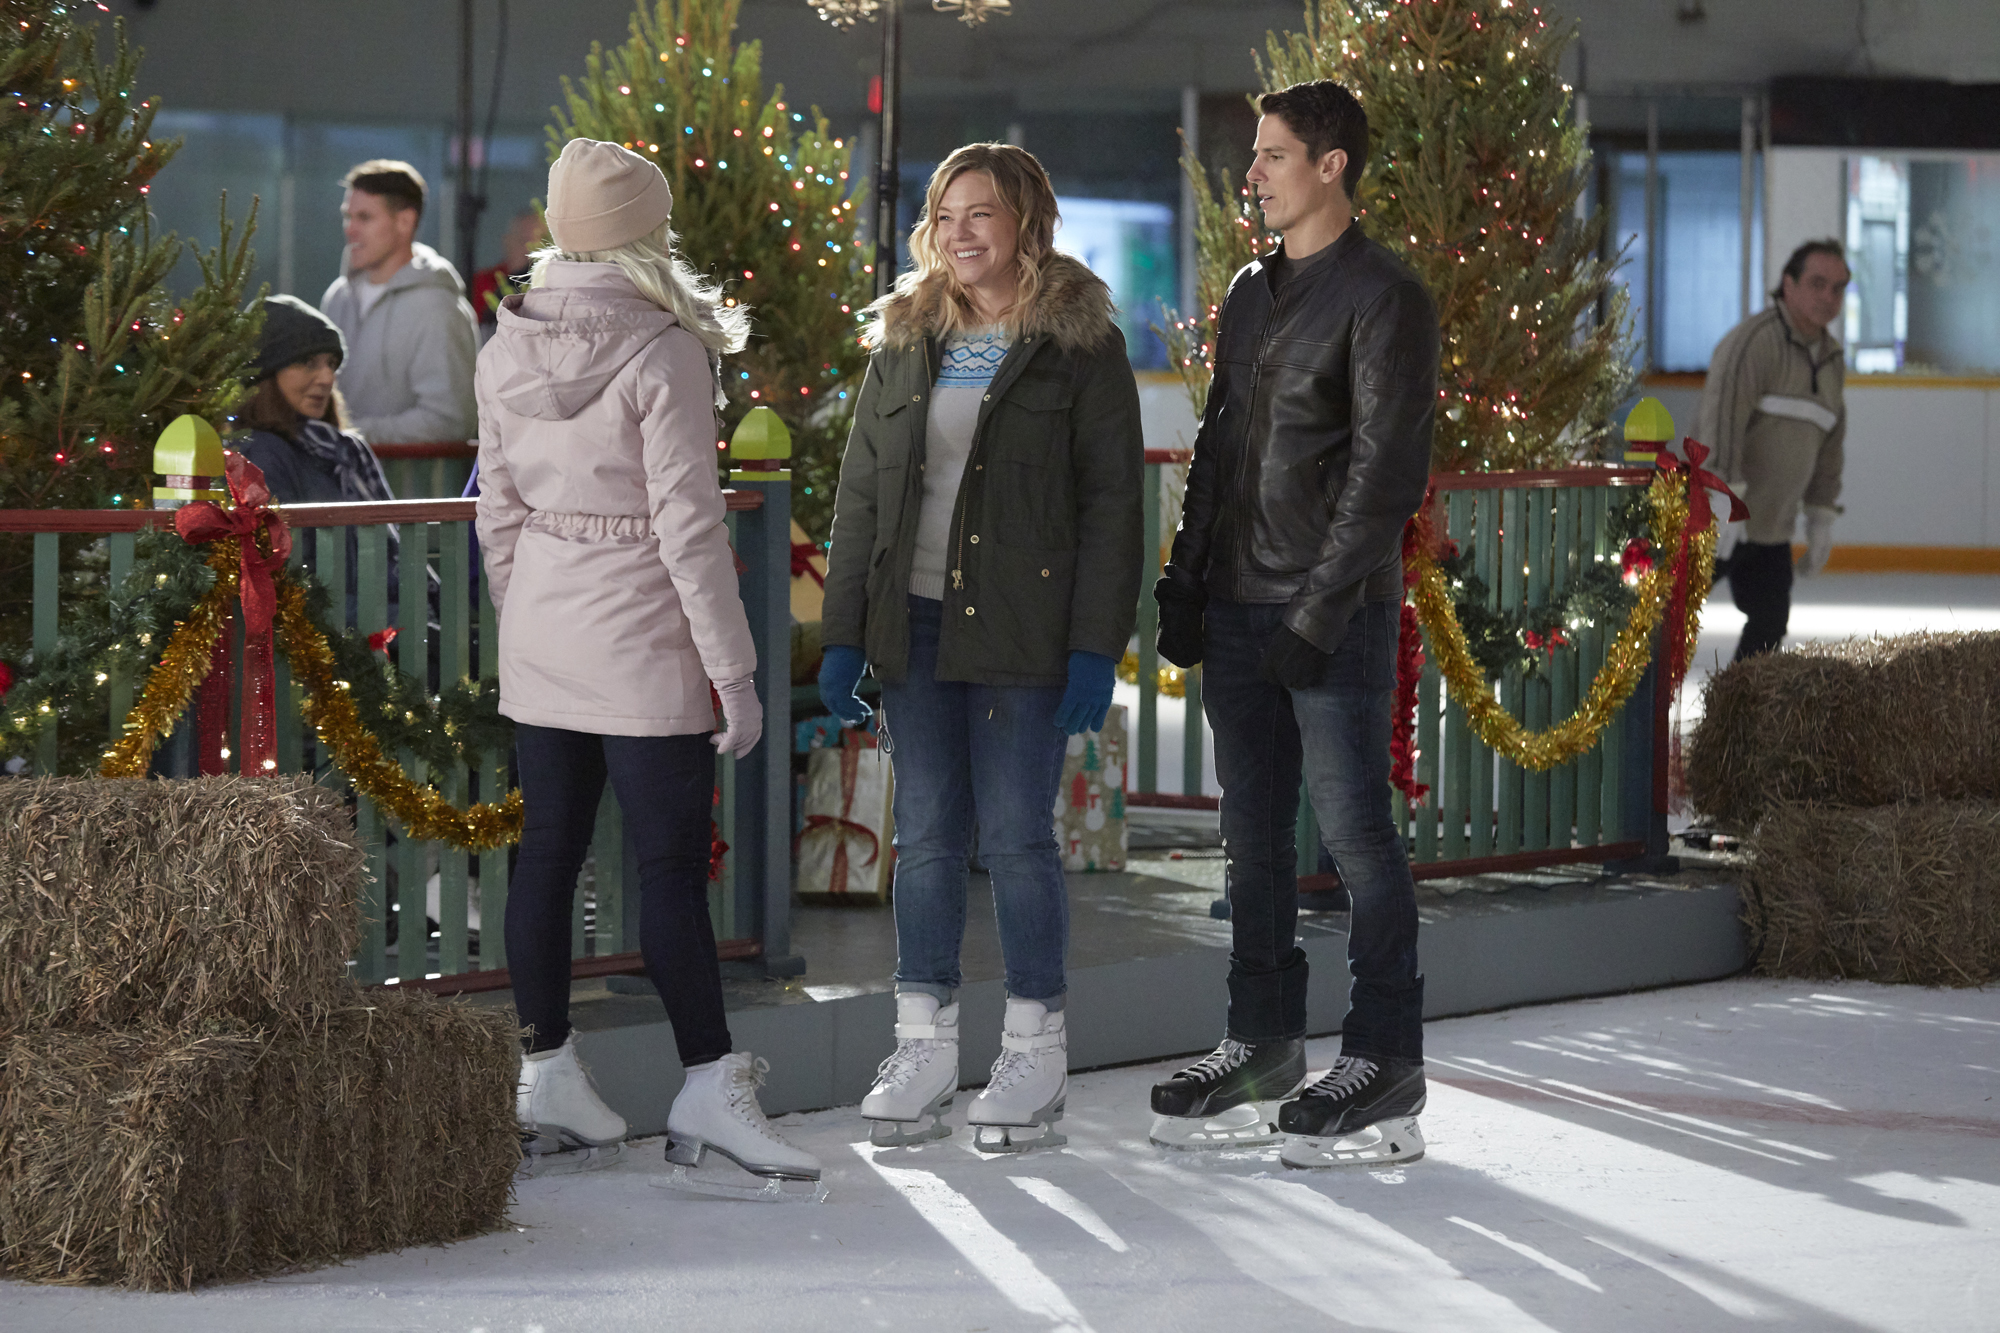 A Veteran's Christmas (formerly A Soldier's Christmas (Nov. 22, 5 p.m. ET/PT, Hallmark Movies & Mysteries)